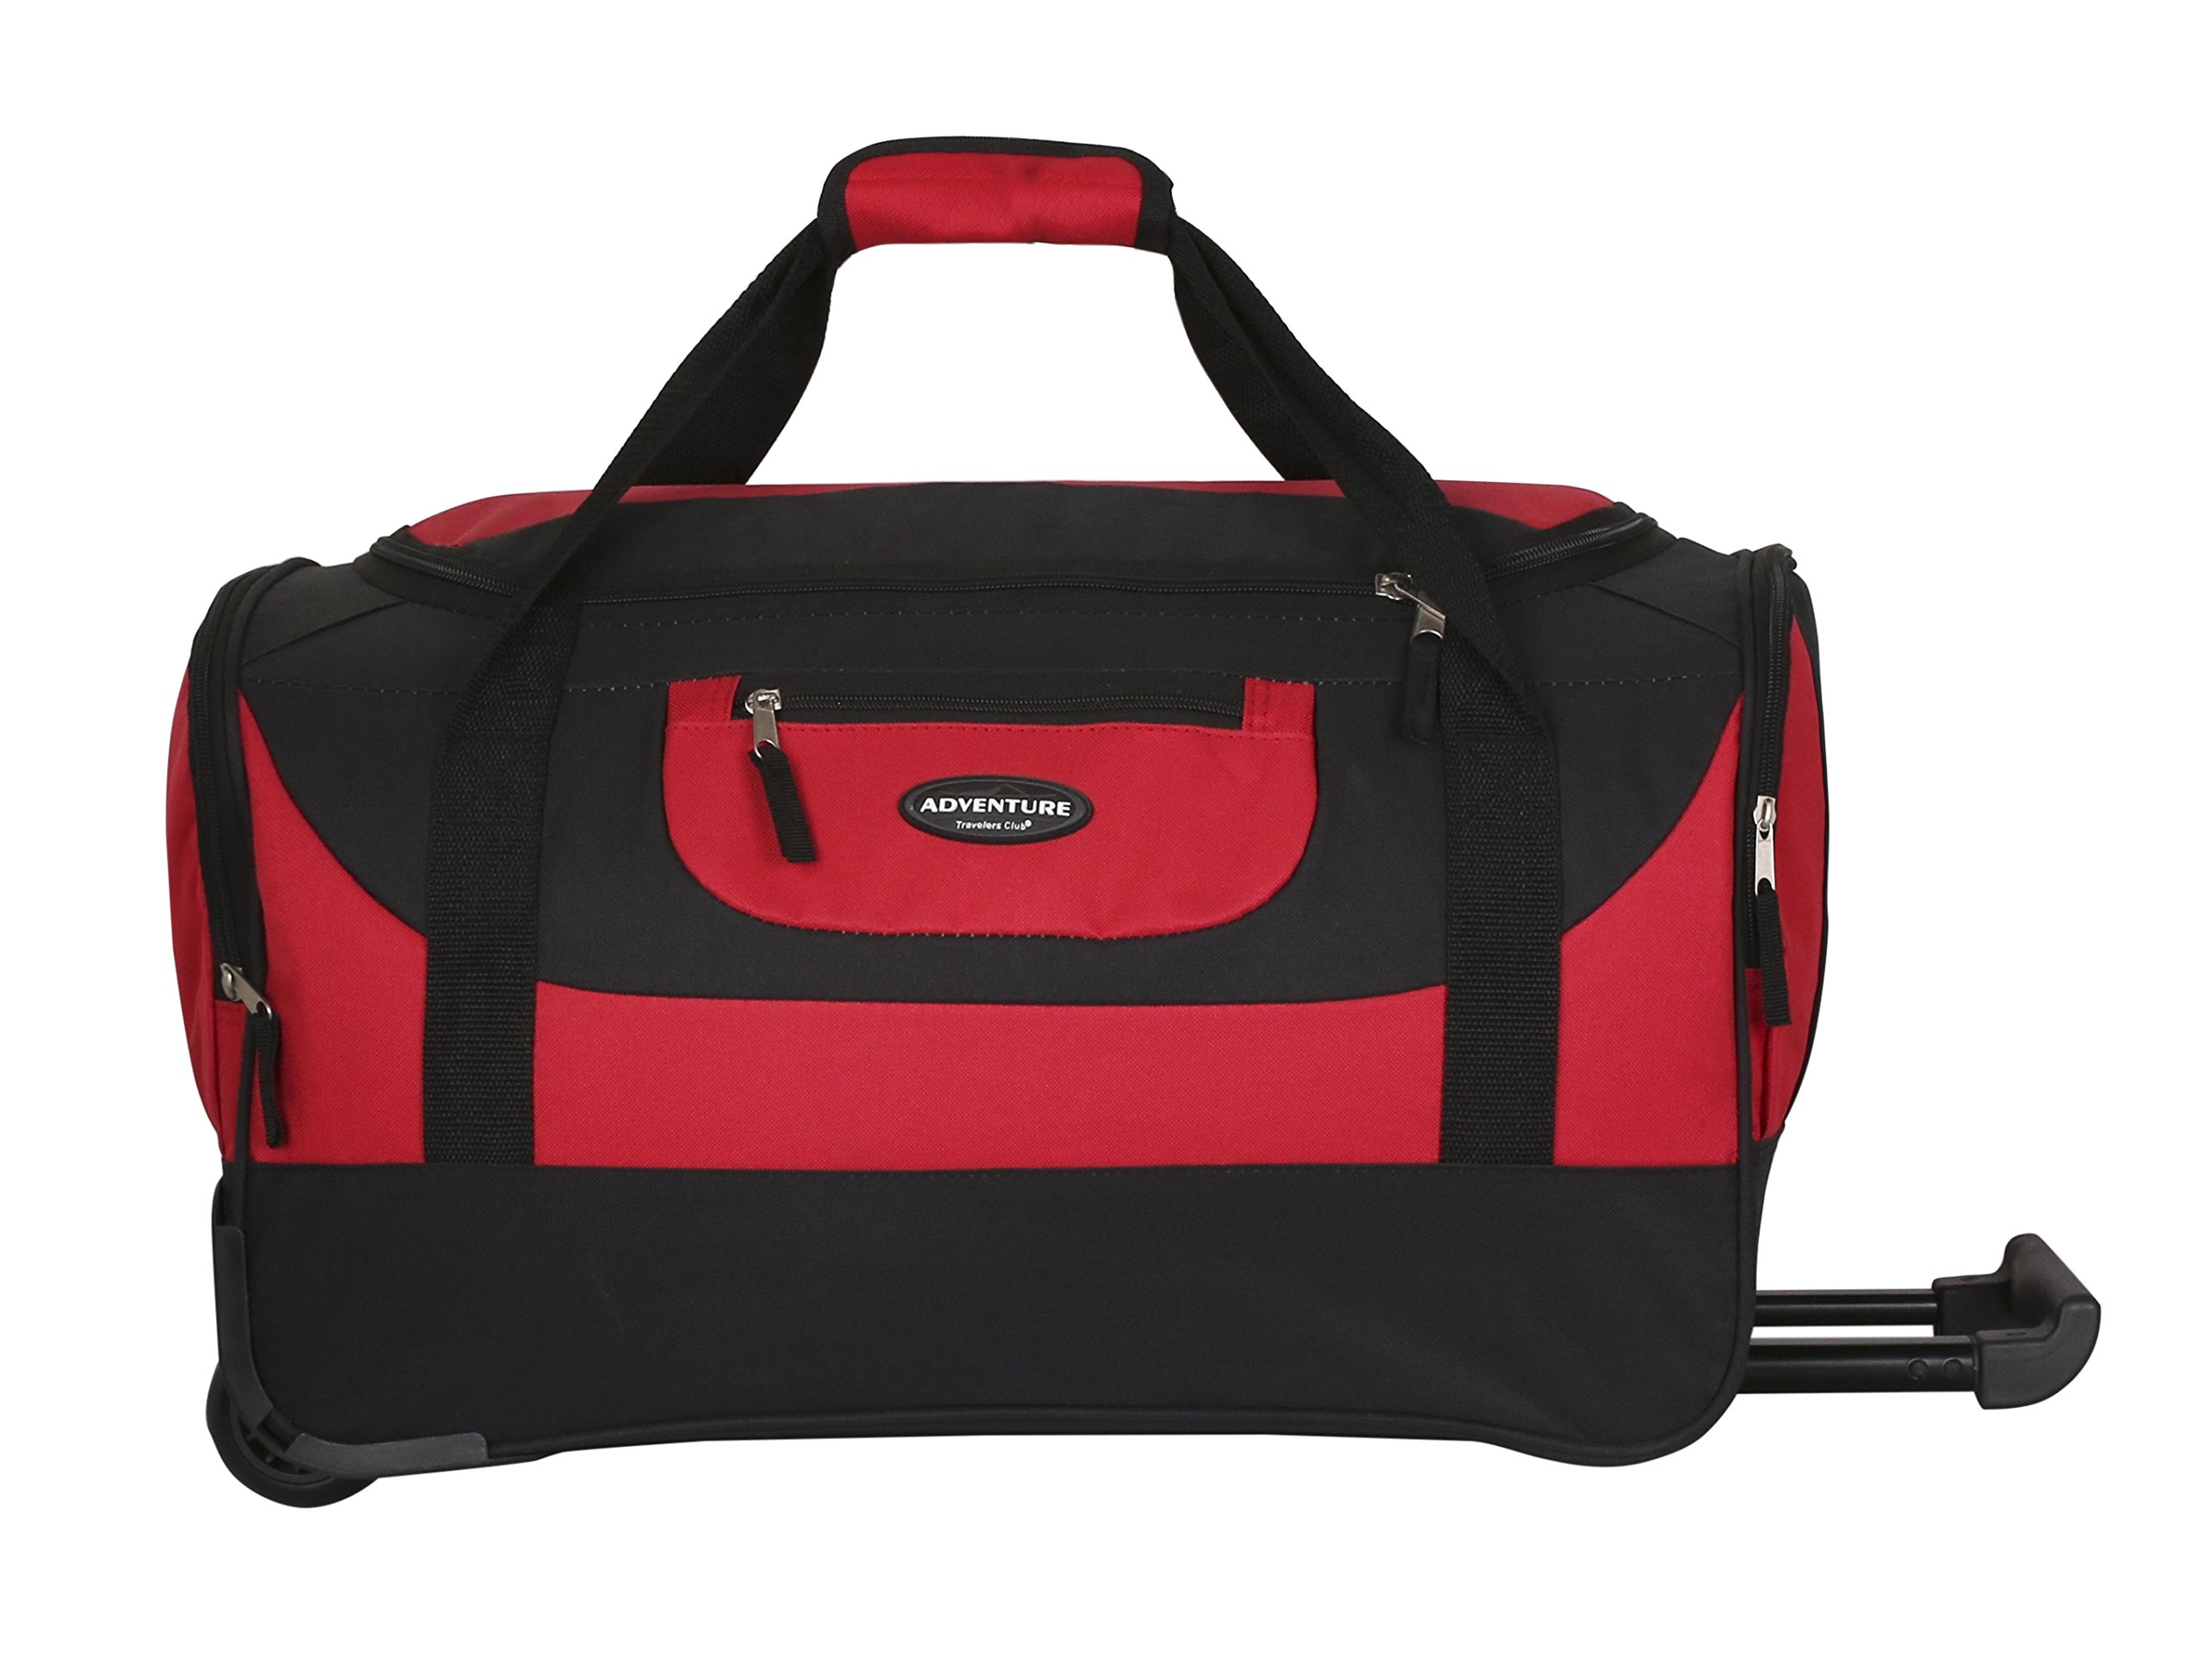 20'' Adventure Rolling Duffel with 2 Large Deep-End Side Accessory Pockets, 2-Tone Red Color Option